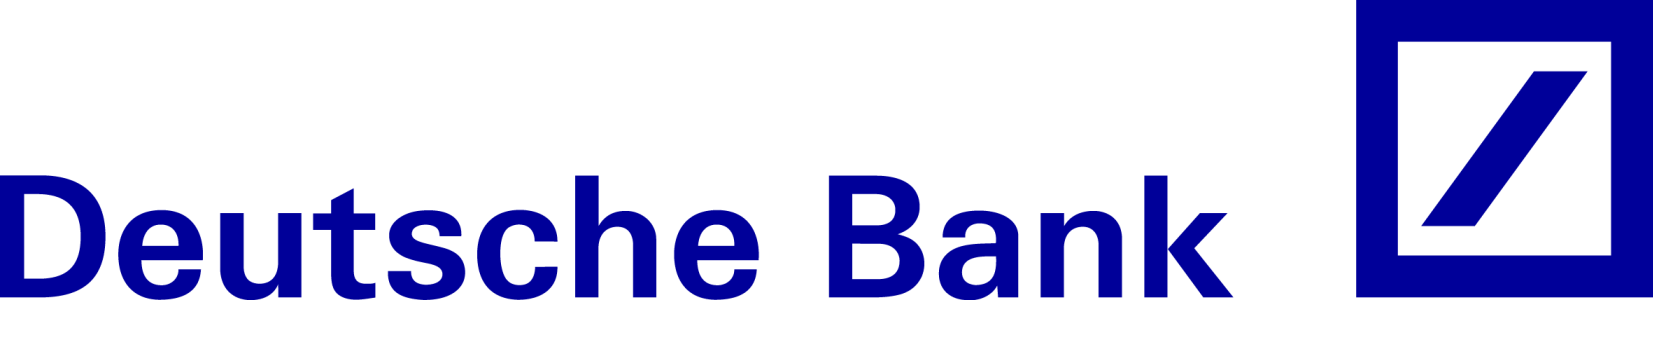 Deutsche Bank Logo - deutsche-bank-logo - KY Finance